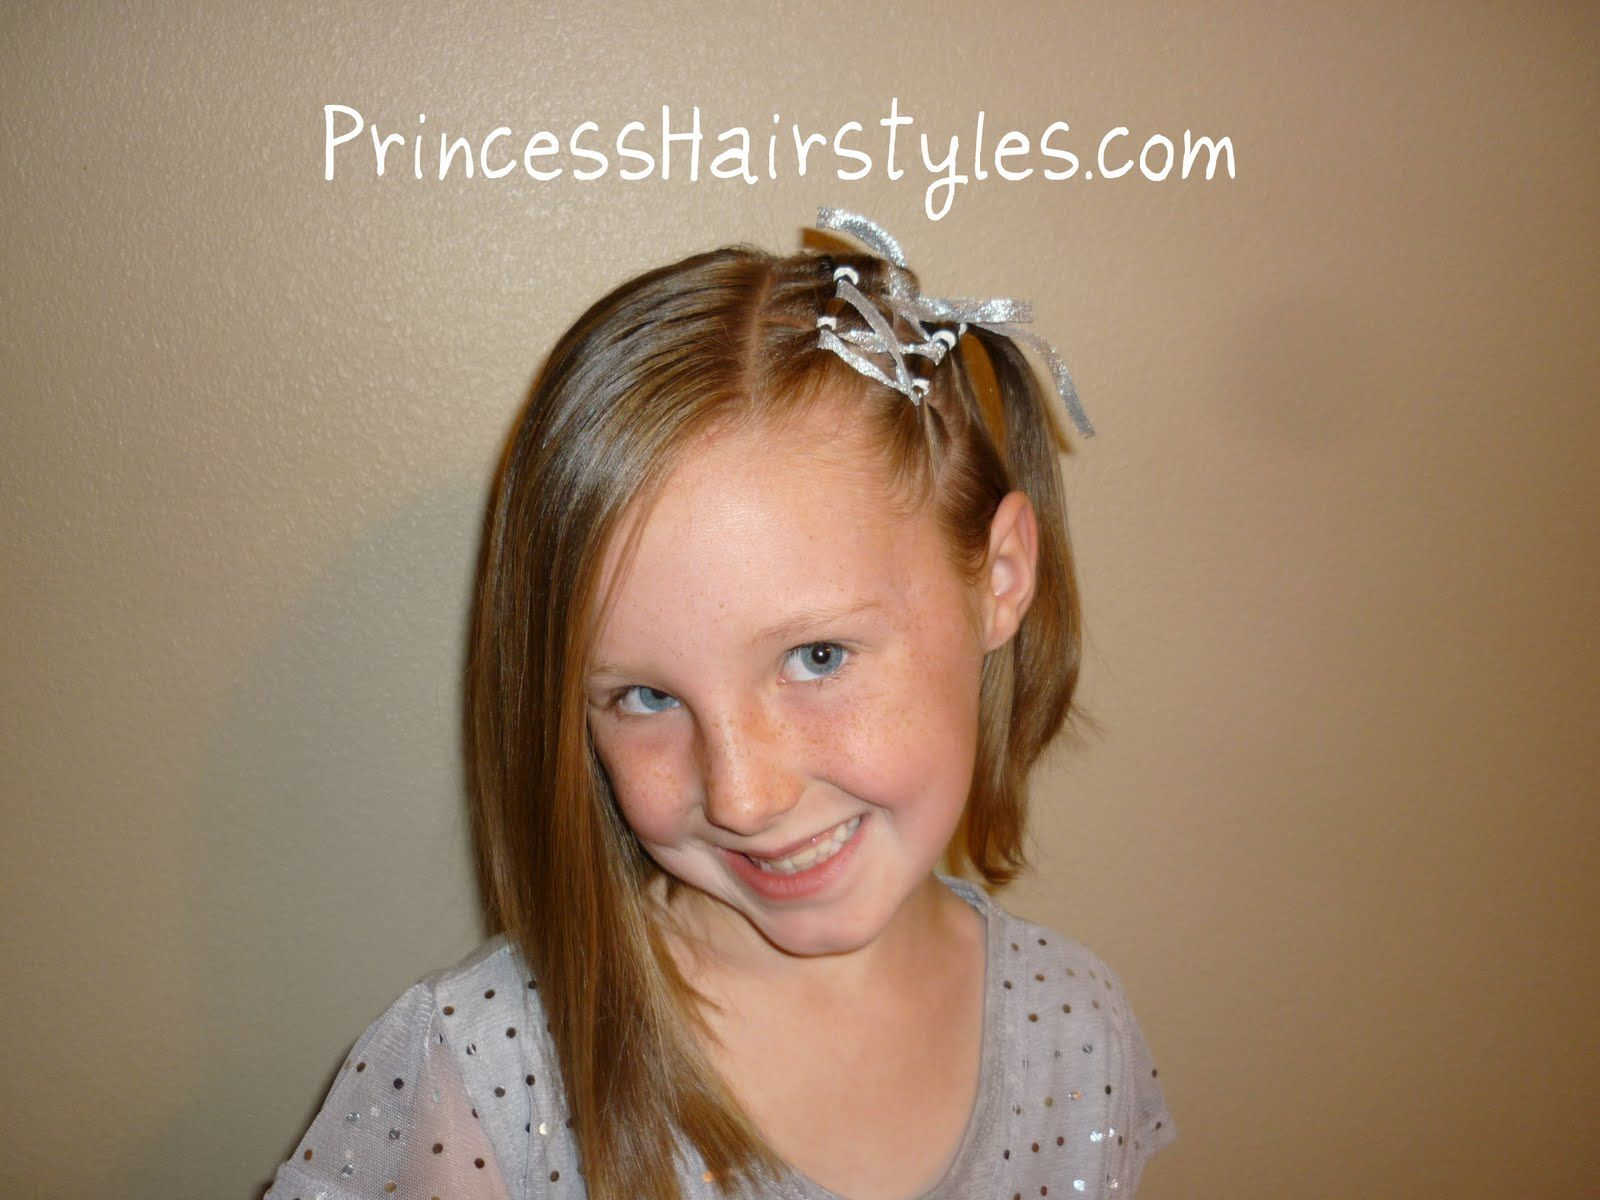 Kids hairstyles for short hair girls - Find This Pin And More On Princess Hairstyles How To Hairstyles For Girls Ribbon Lacing For Short Hair